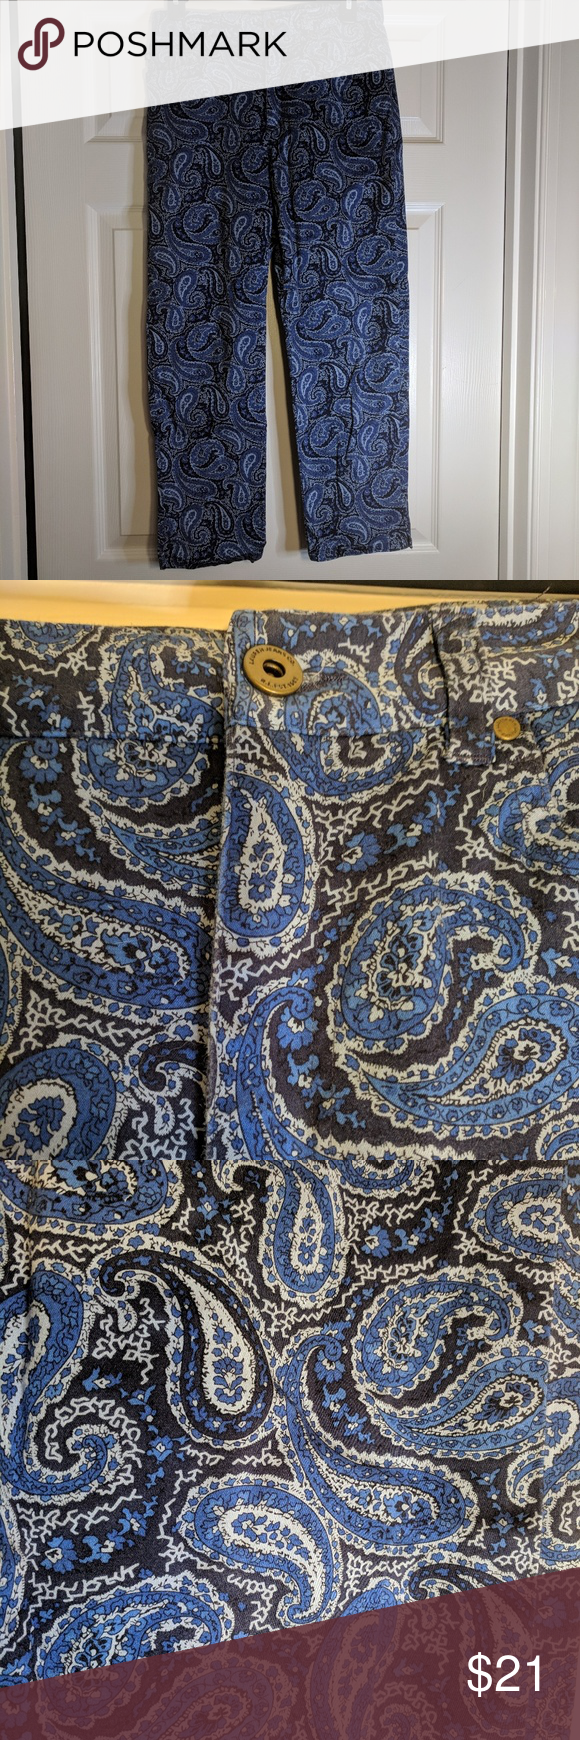 Lauren Ralph Lauren cotton pants Paisley pattern 8 Gorgeous & soft paisley blue pattern on these cotton pants from Lauren by Ralph Lauren.  Pants have a bit of spandex to give them a little stretch.  Button and zip at the waist.  Really unique!  Size 8. Lauren Ralph Lauren Pants Straight Leg